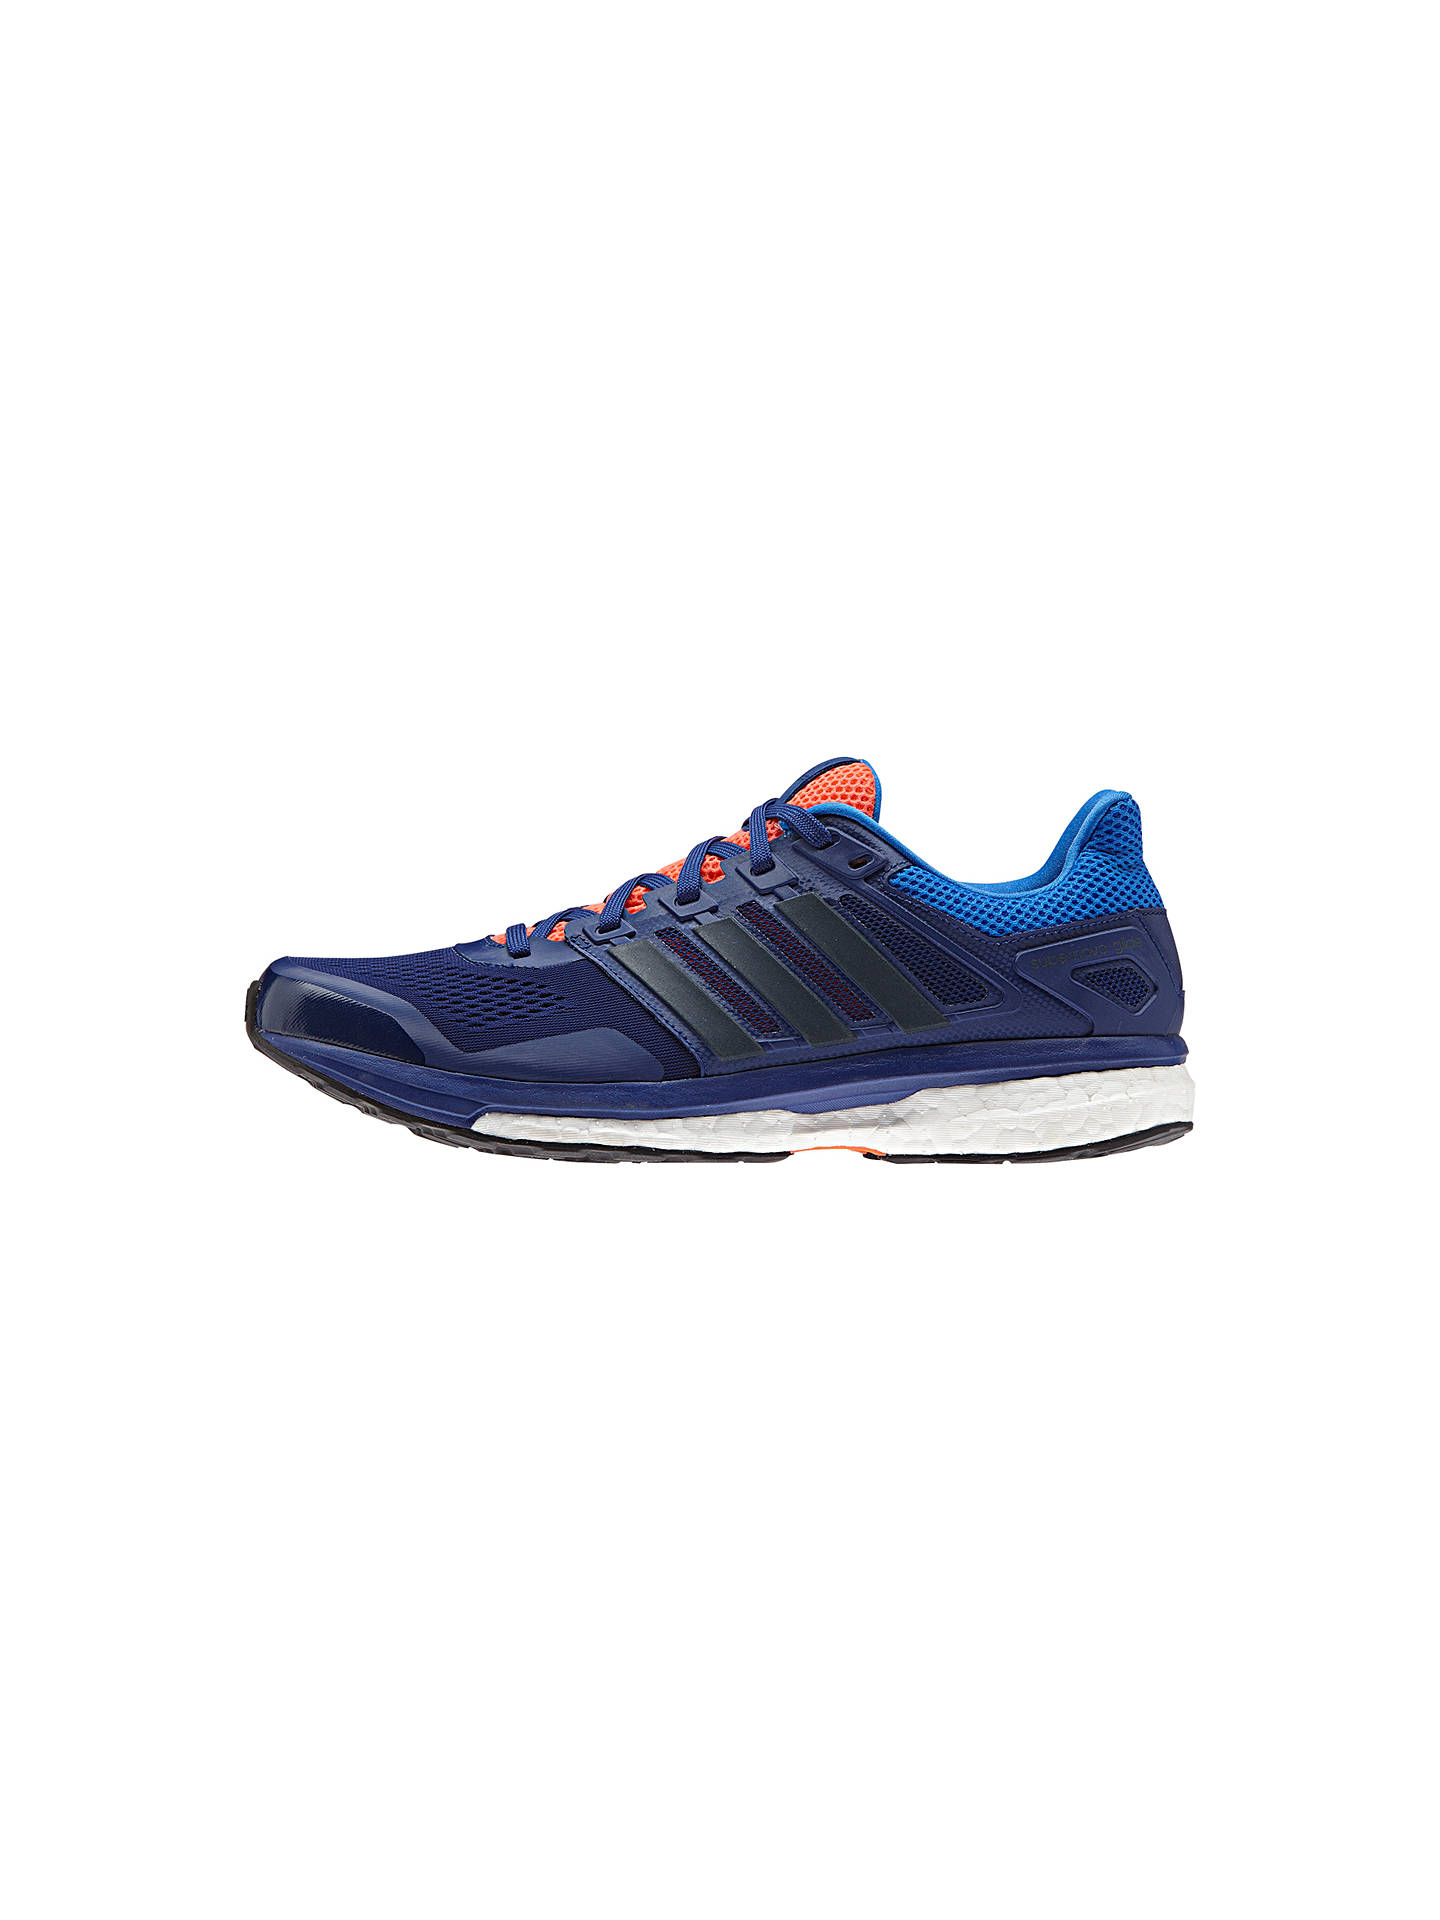 low priced b98d9 1607c BuyAdidas Performance Supernova Glide 8 Cushioned Mens Running Shoes,  Blue, 7 Online at johnlewis ...